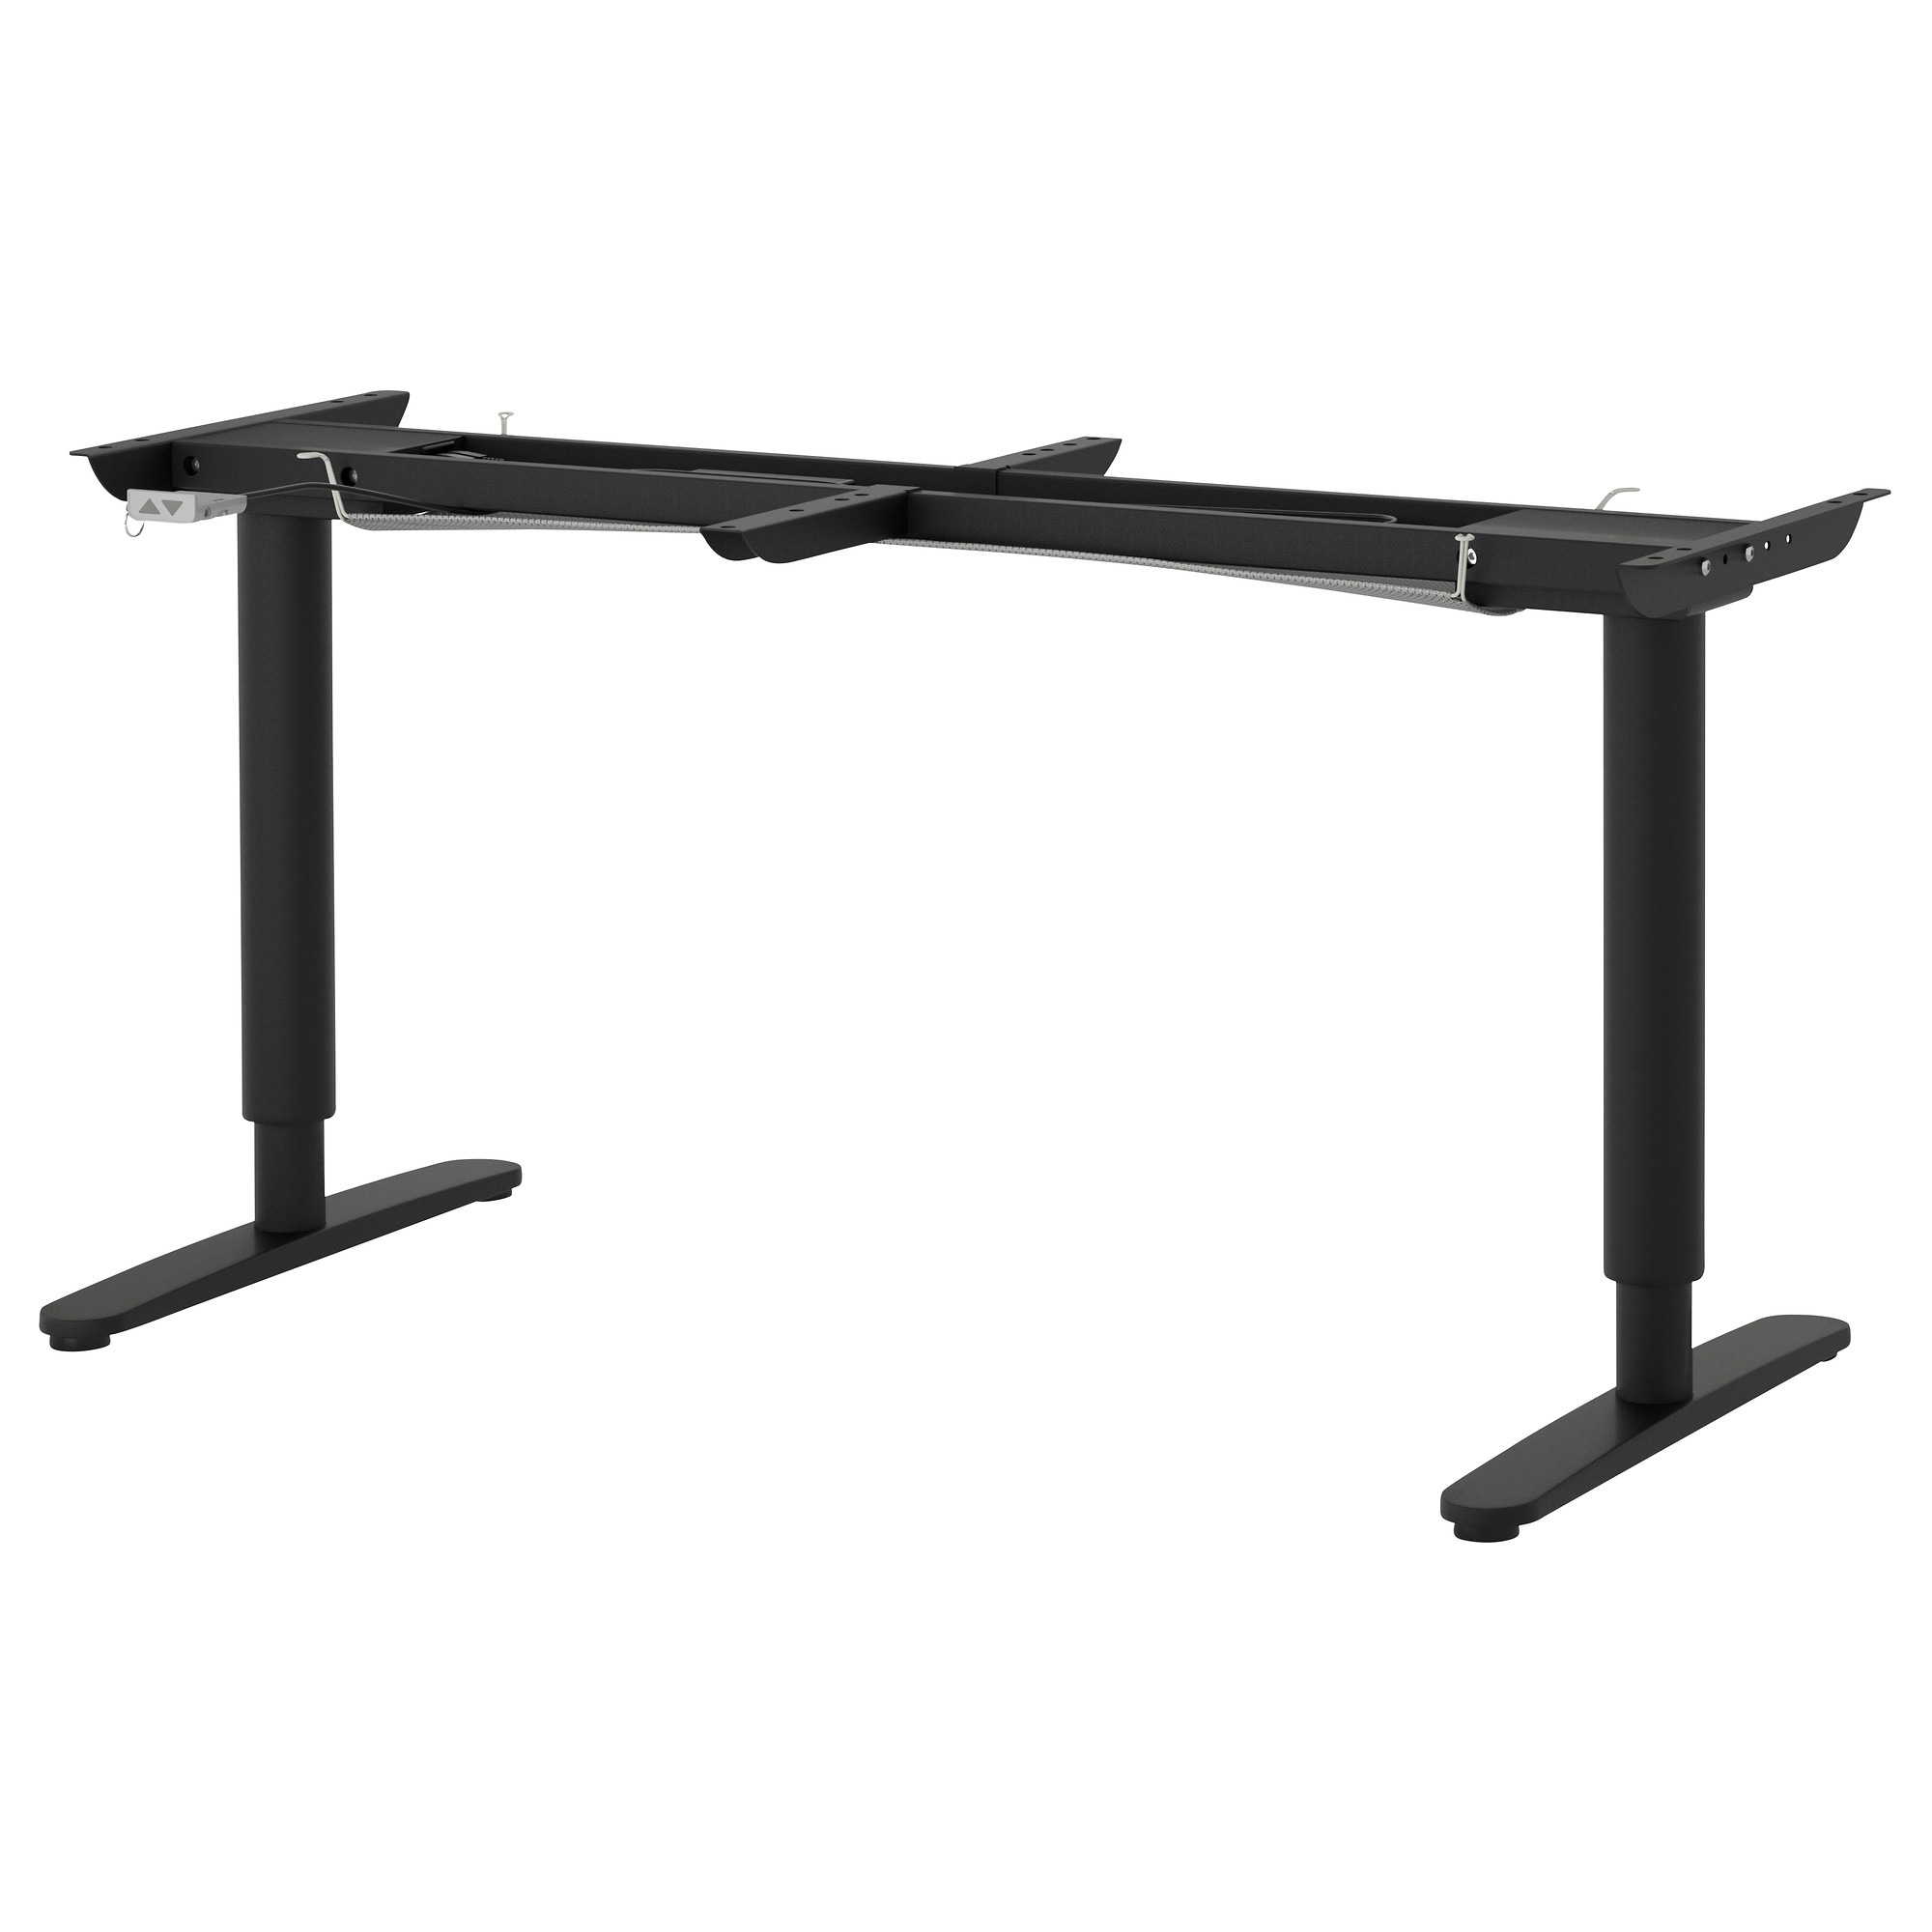 us underframe ikea stand legs adjustable bekant top table catalog desk black for en sit products